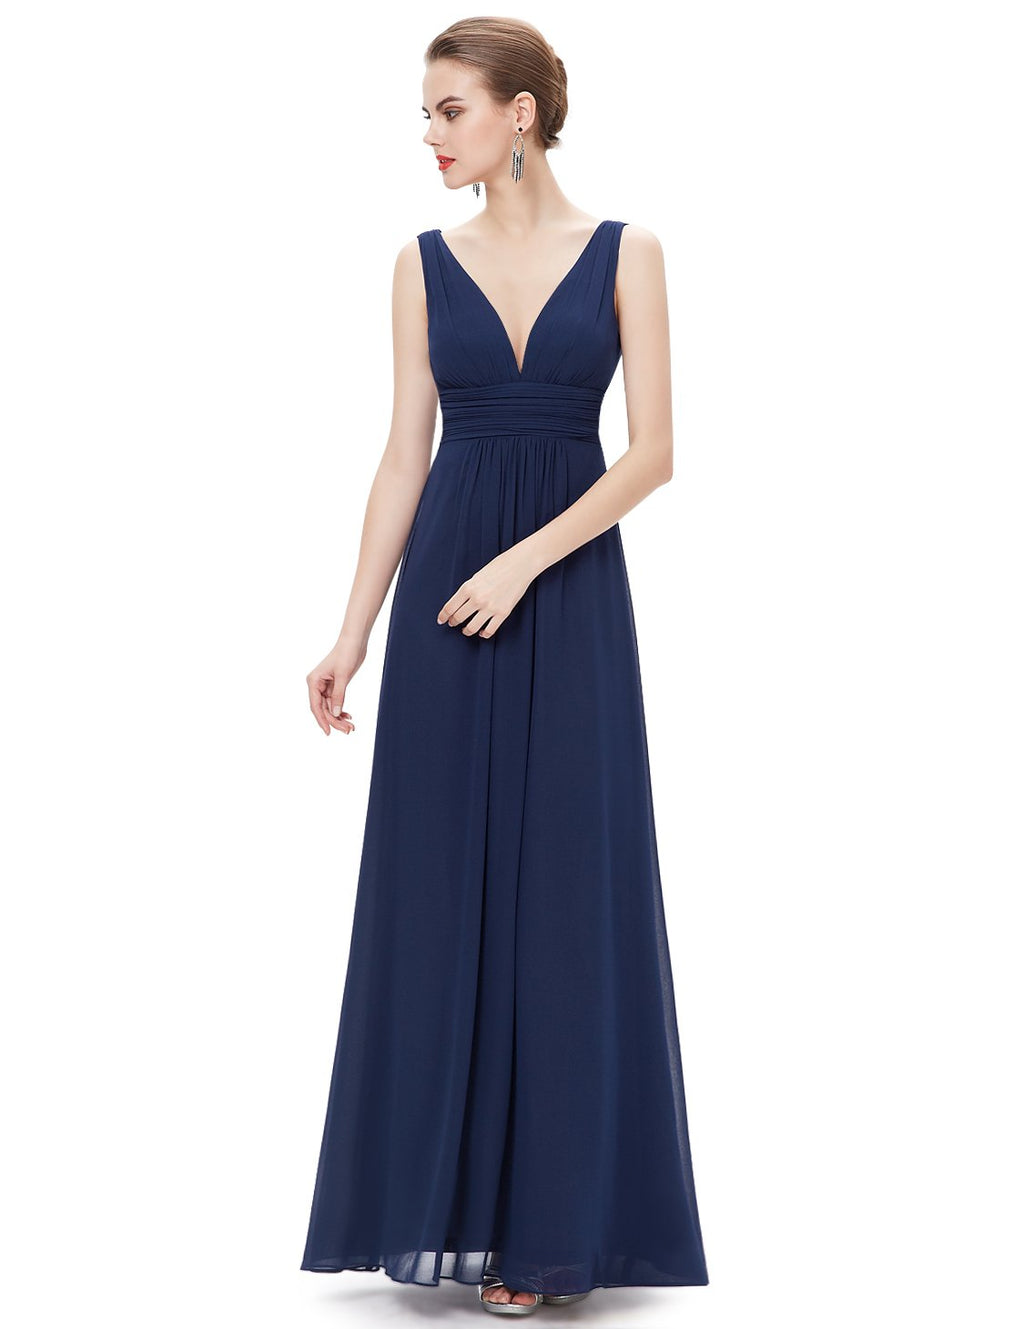 Chiffon Elegant Evening Gown Navy Blue